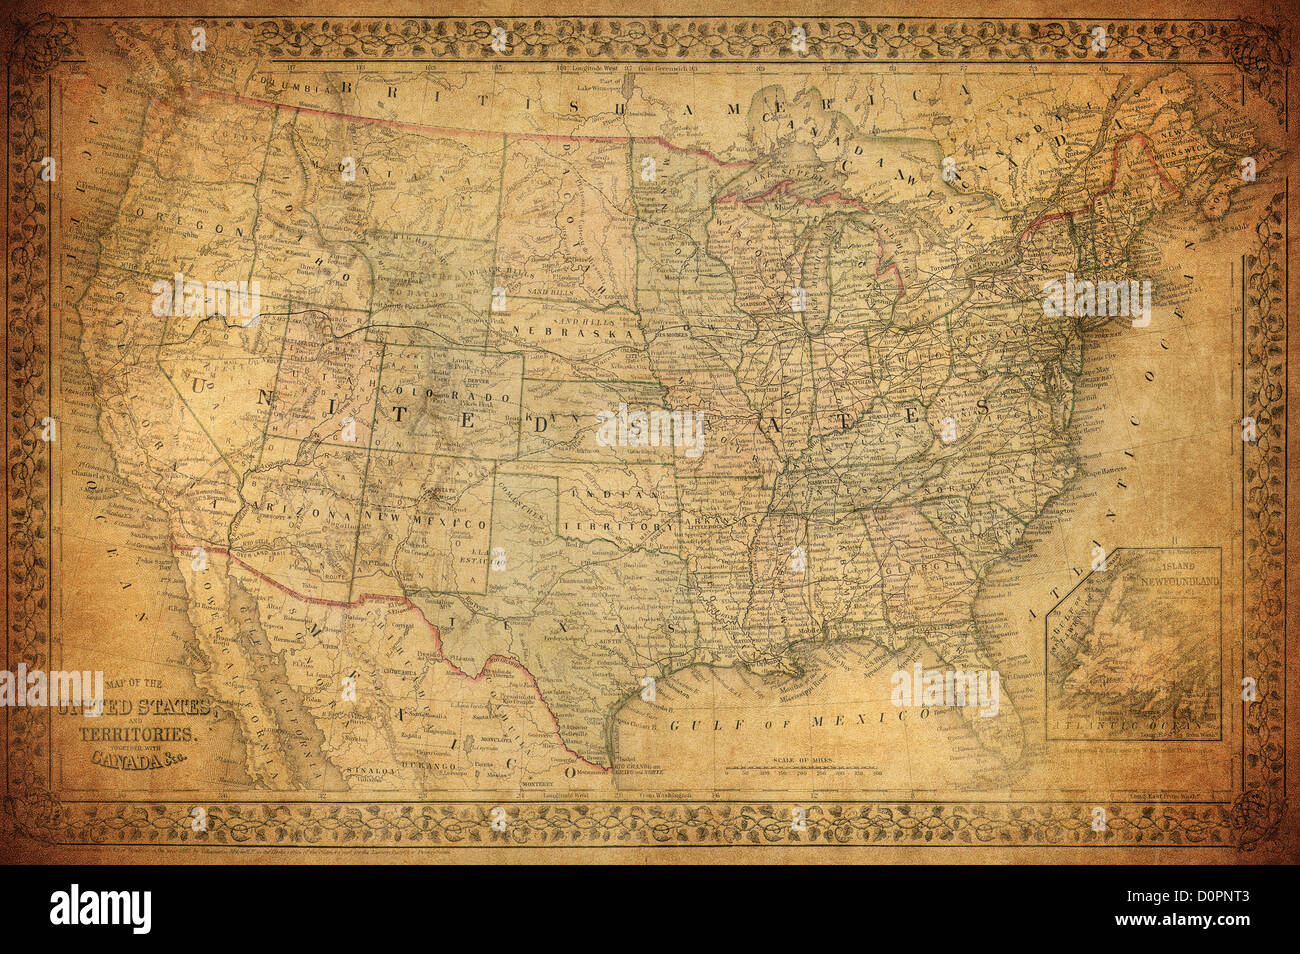 Vintage map of United States 1867 - Stock Image